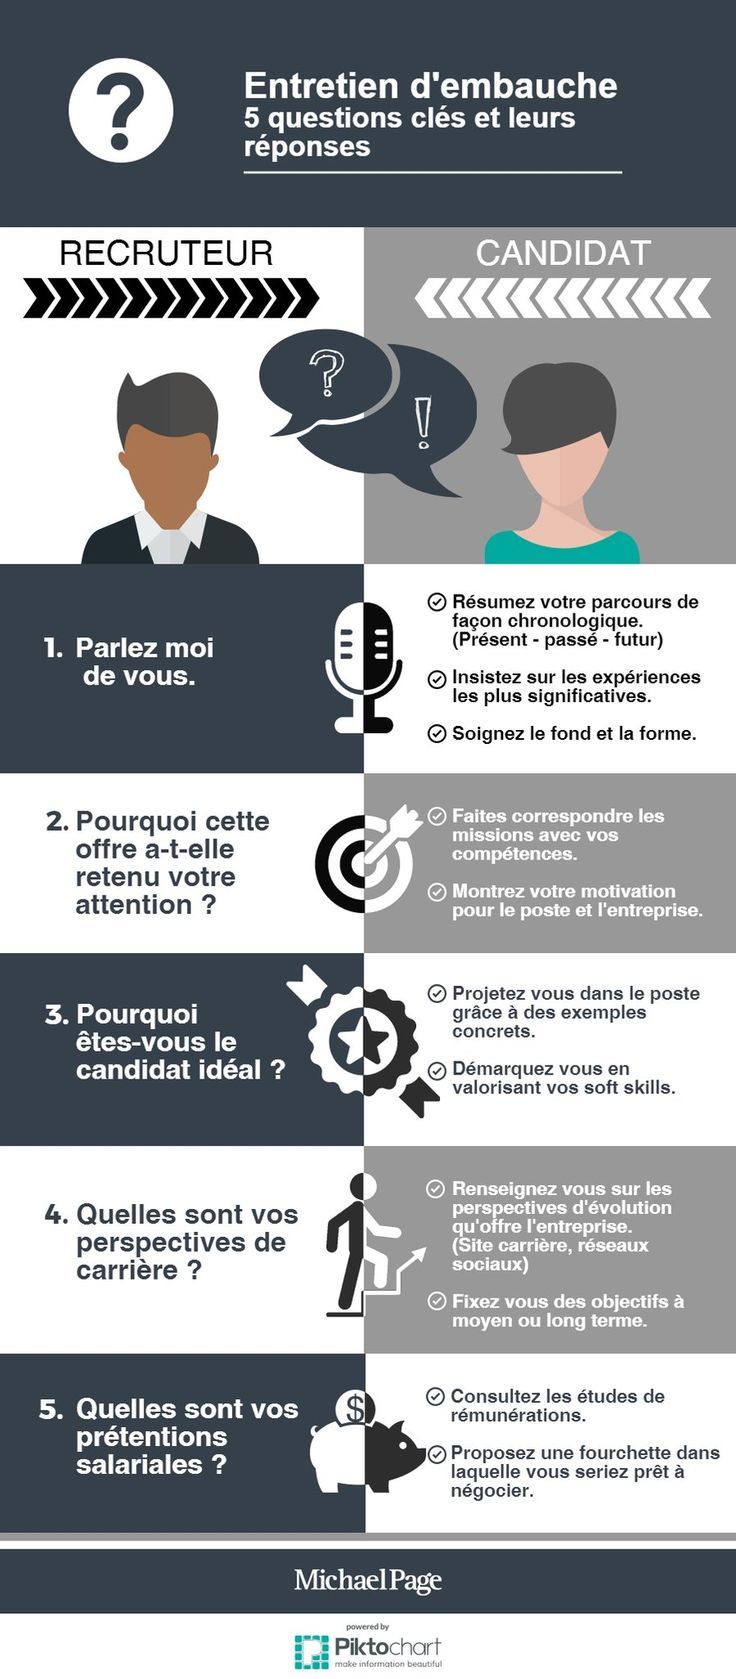 Questions and responses for a job interview in French ...